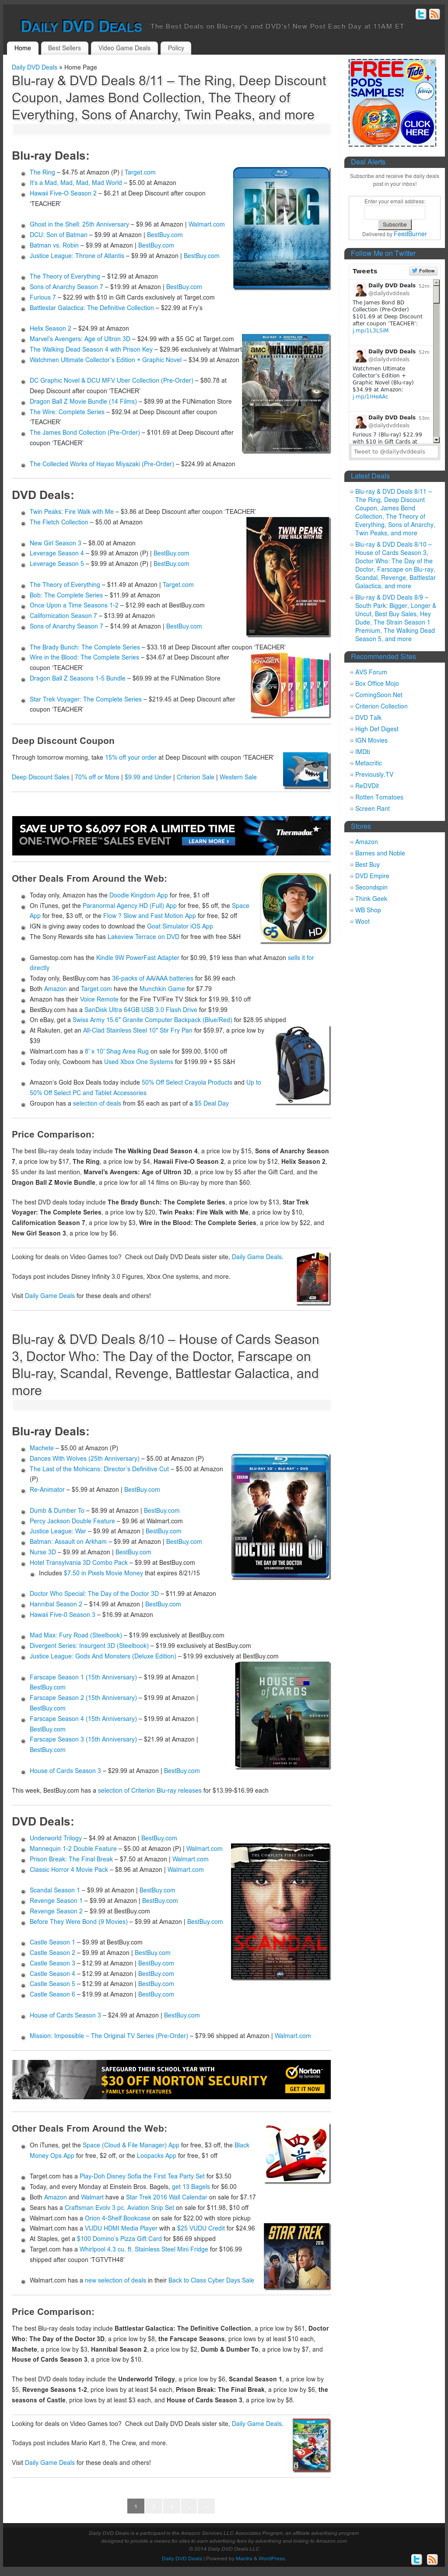 Dailydvddeals Competitors, Revenue and Employees - Owler